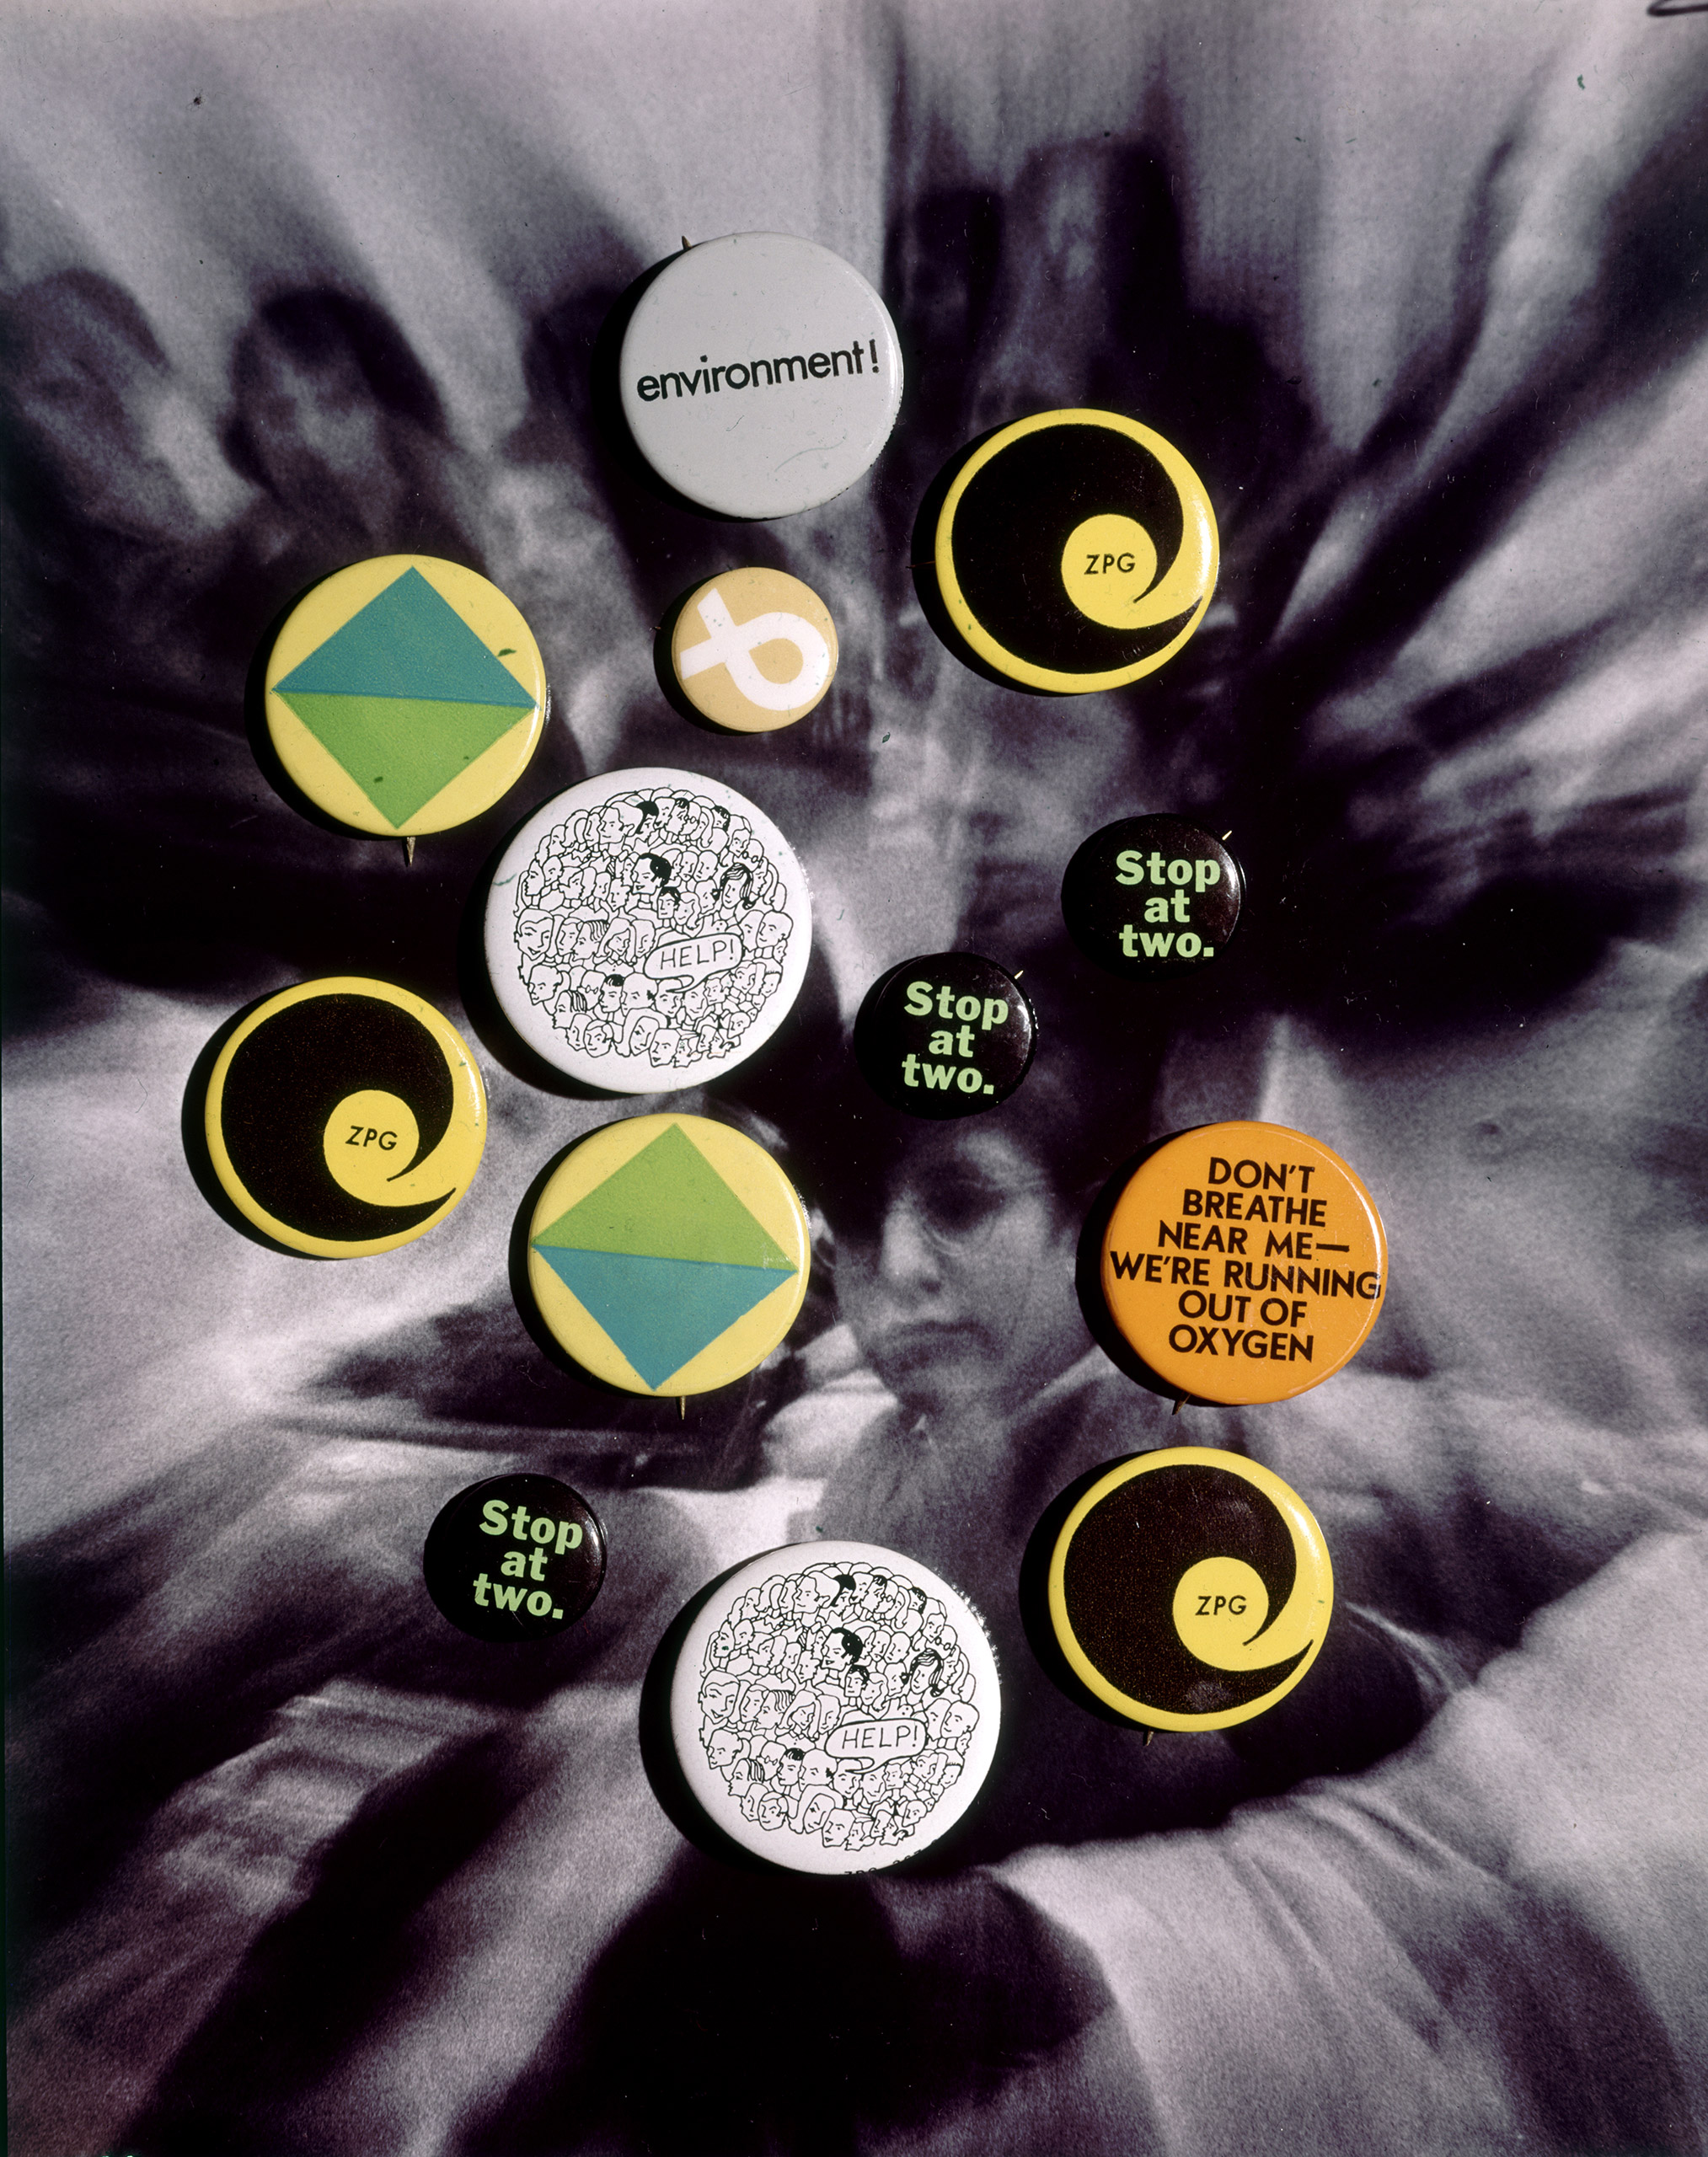 Ecology and population control buttons from the Zero Population Growth movement at Ithaca College NY 1970.